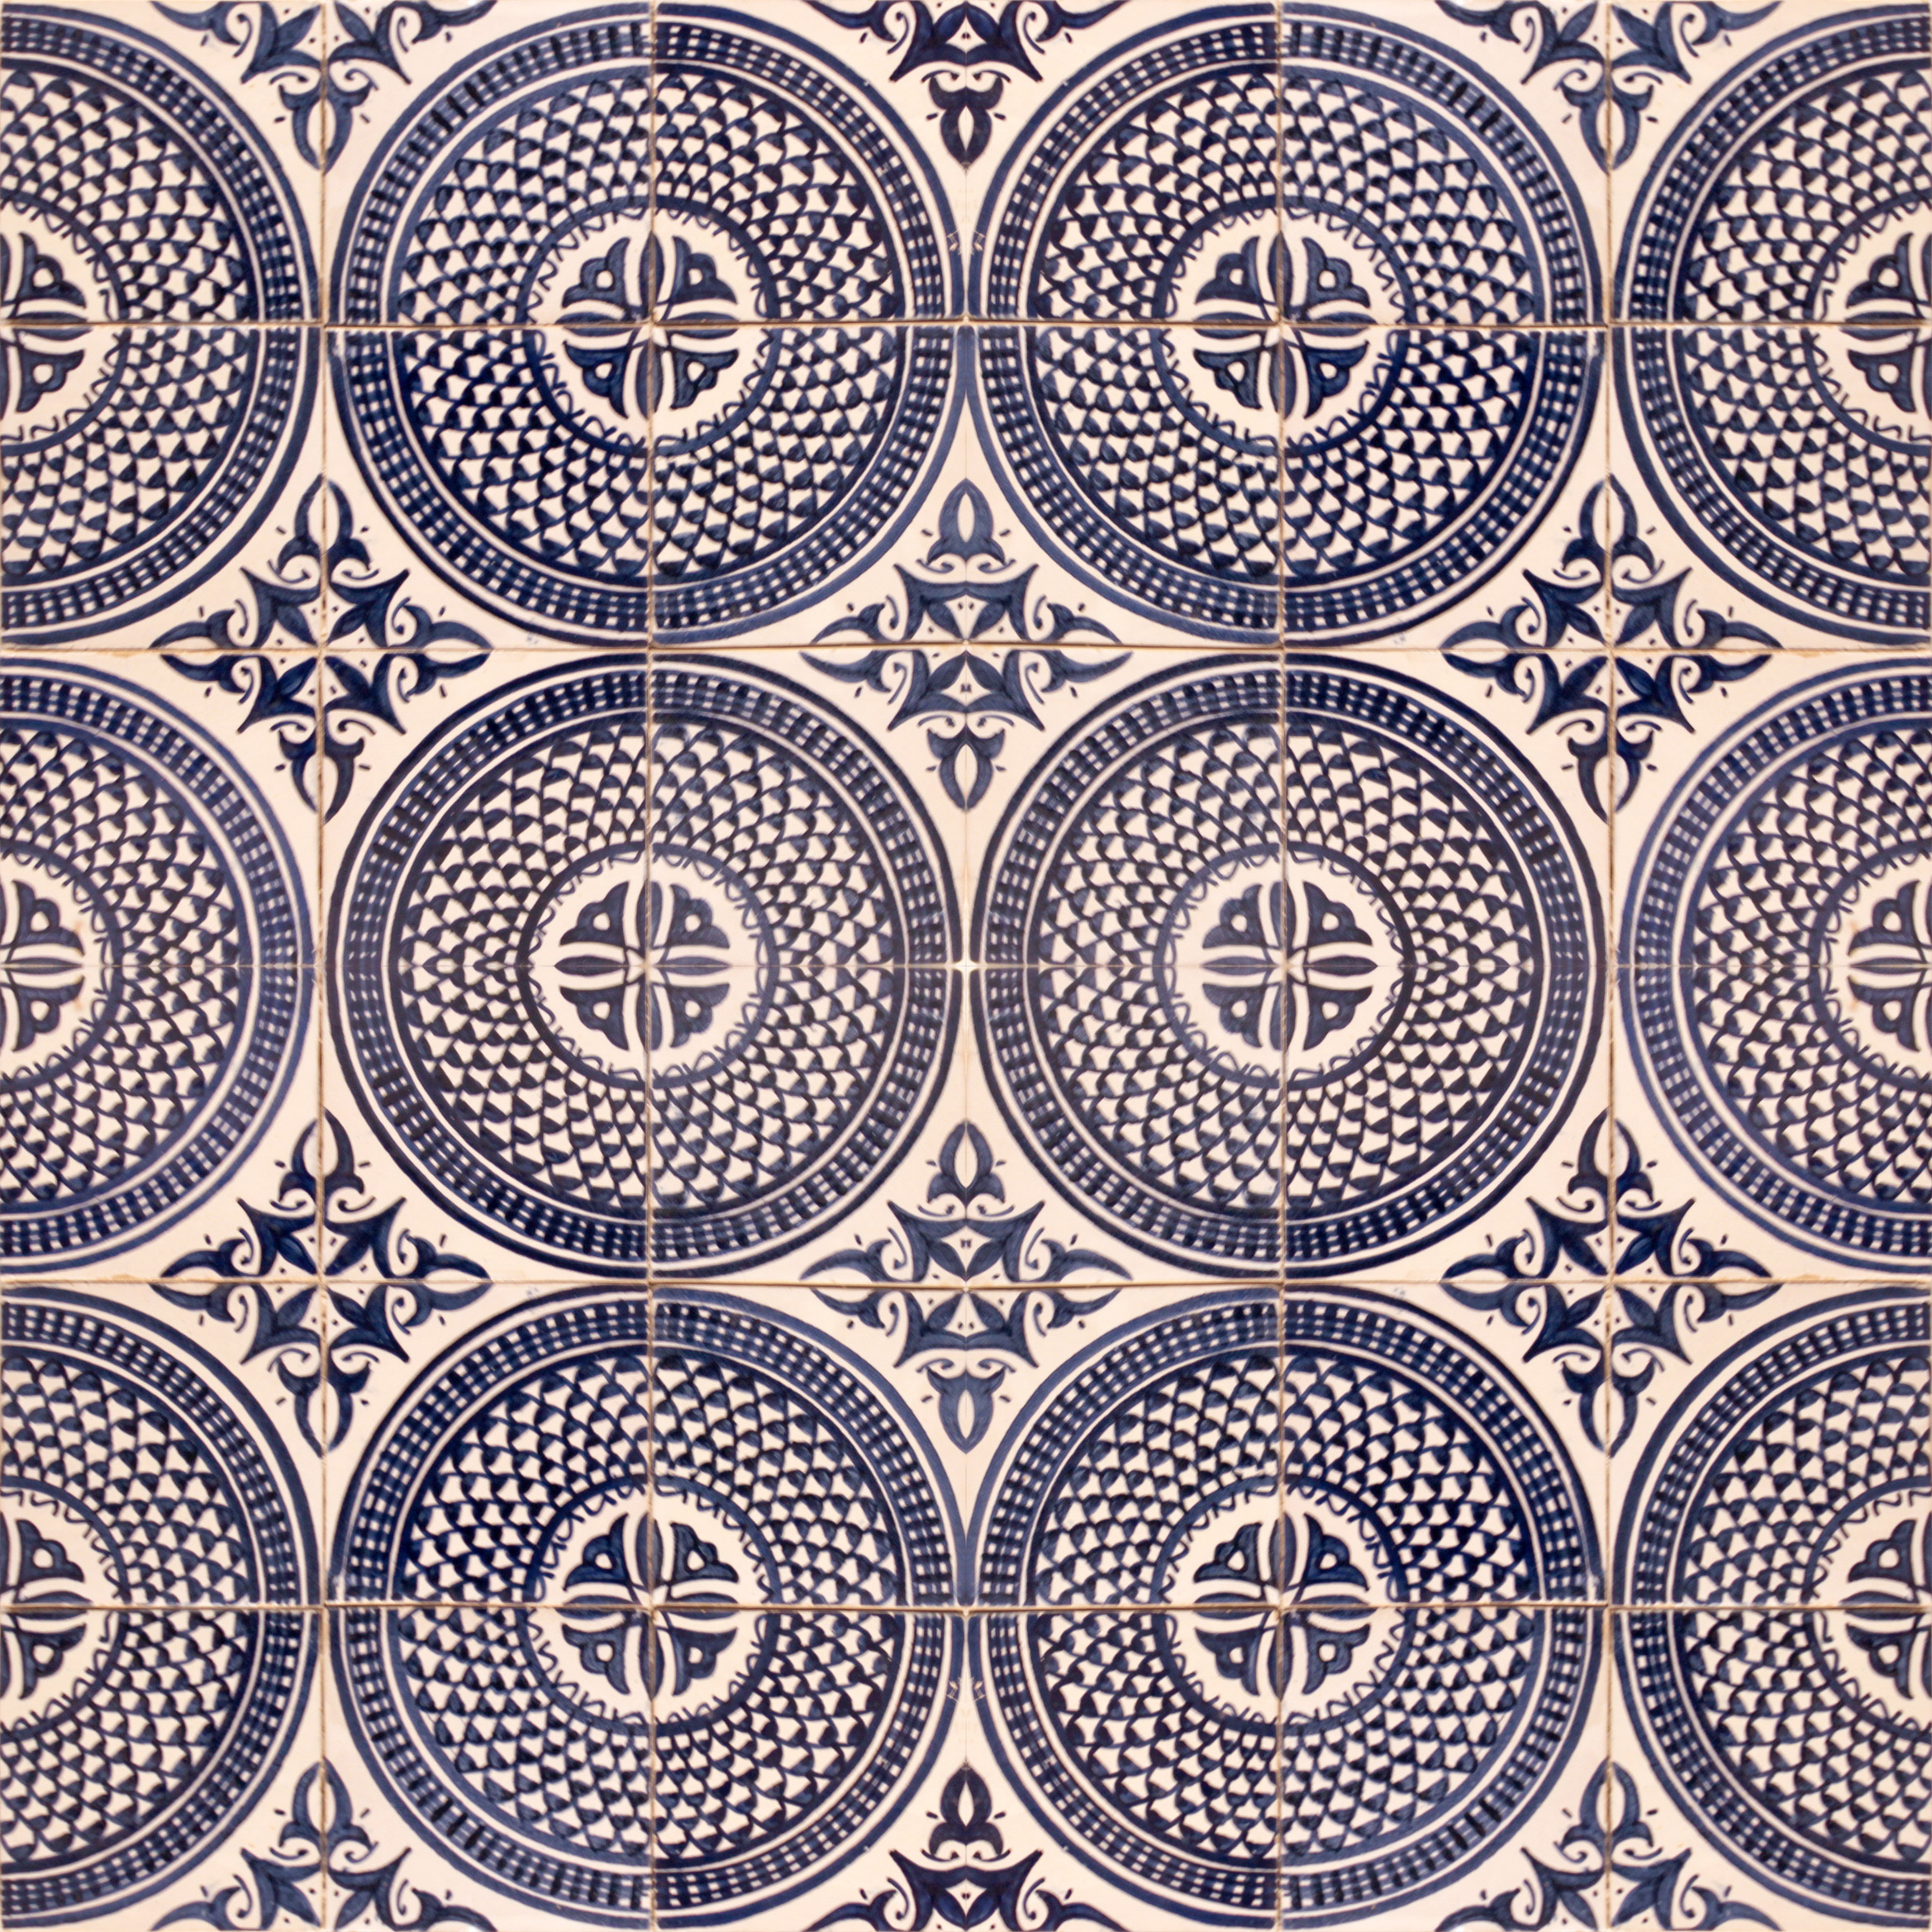 Mosaic House Moroccan tile Dahlia 1-15 White Cobalt Blue  hand painted